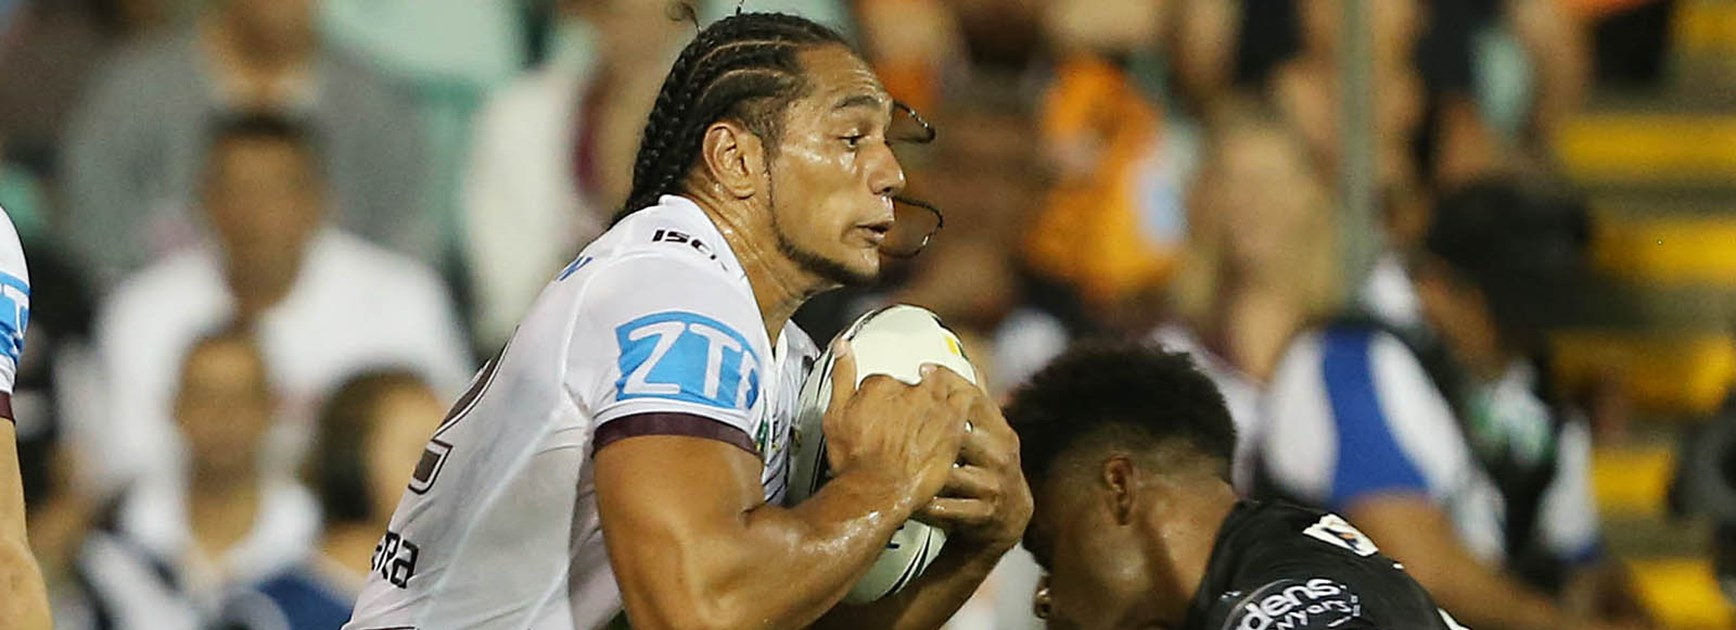 Manly recruit Martin Taupau had a massive game against his former Wests Tigers at Leichhardt Oval.